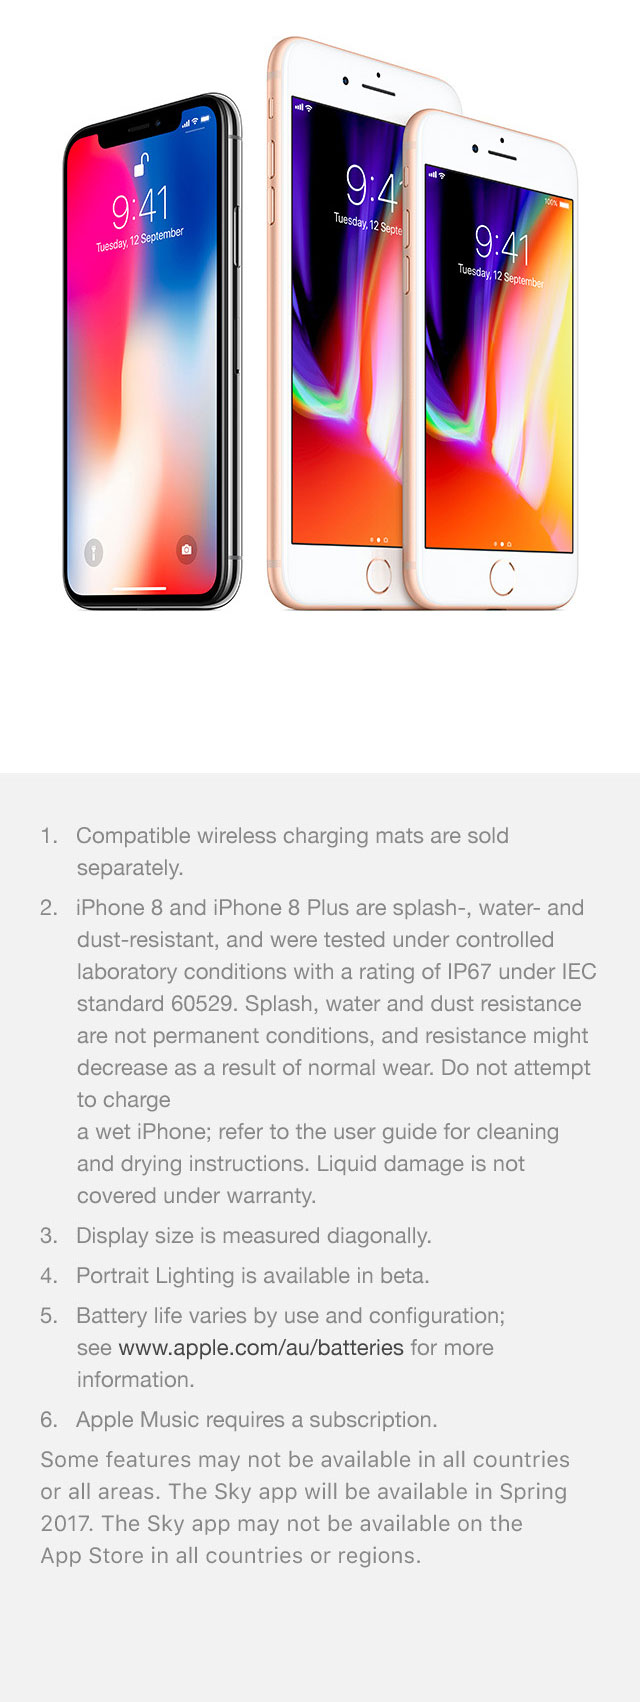 iPhone 8 Mobile plans from Telstra